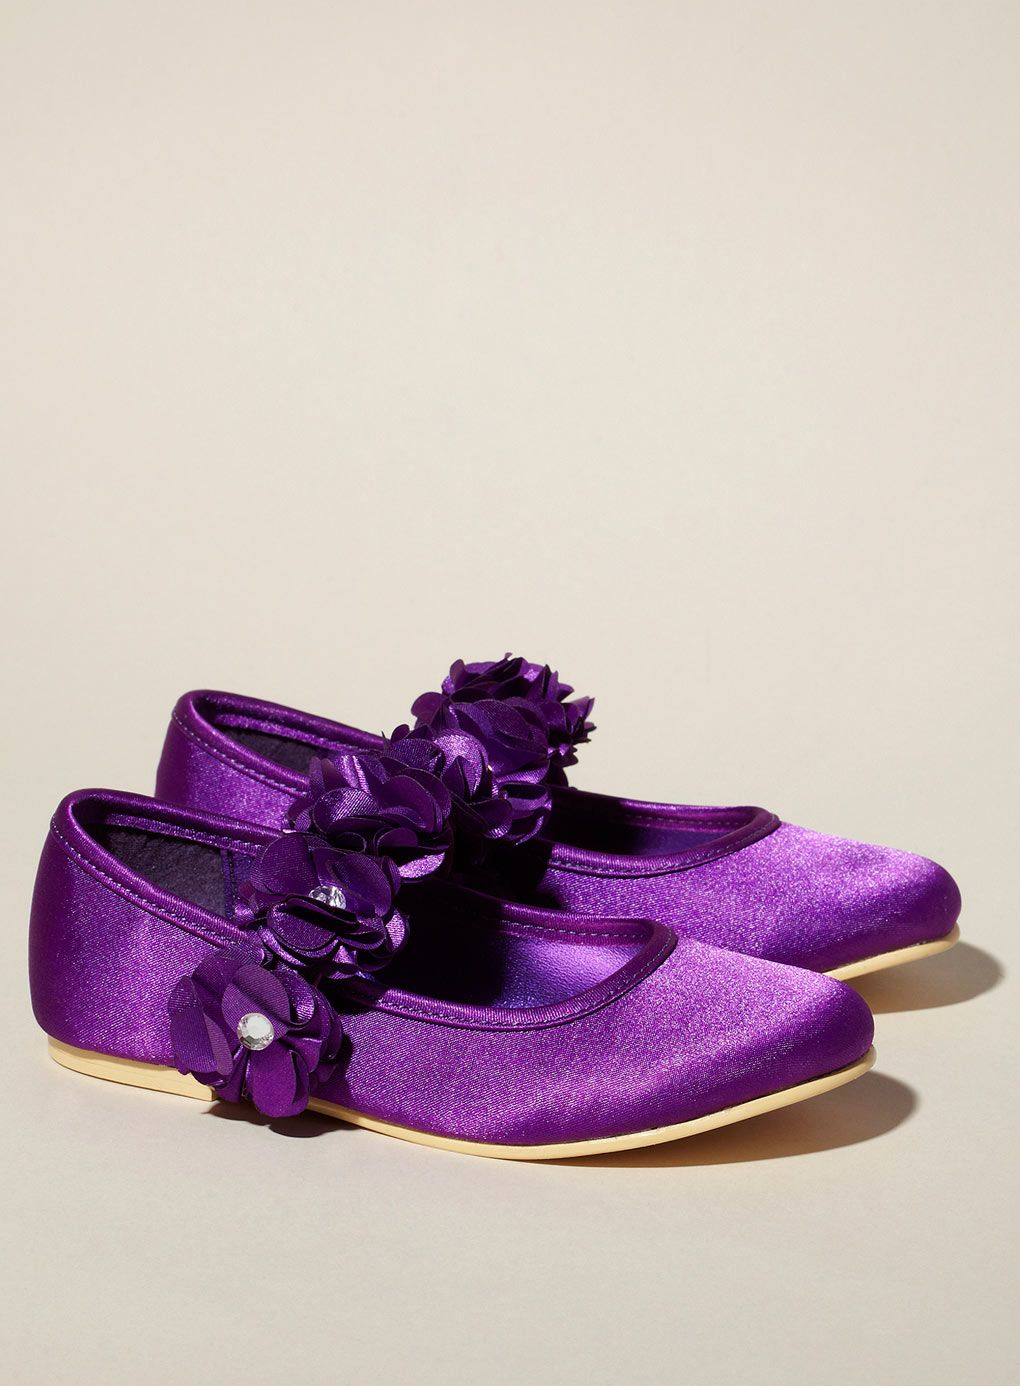 fd26e8d78865 Cute shoes for flower girl in purple wedding